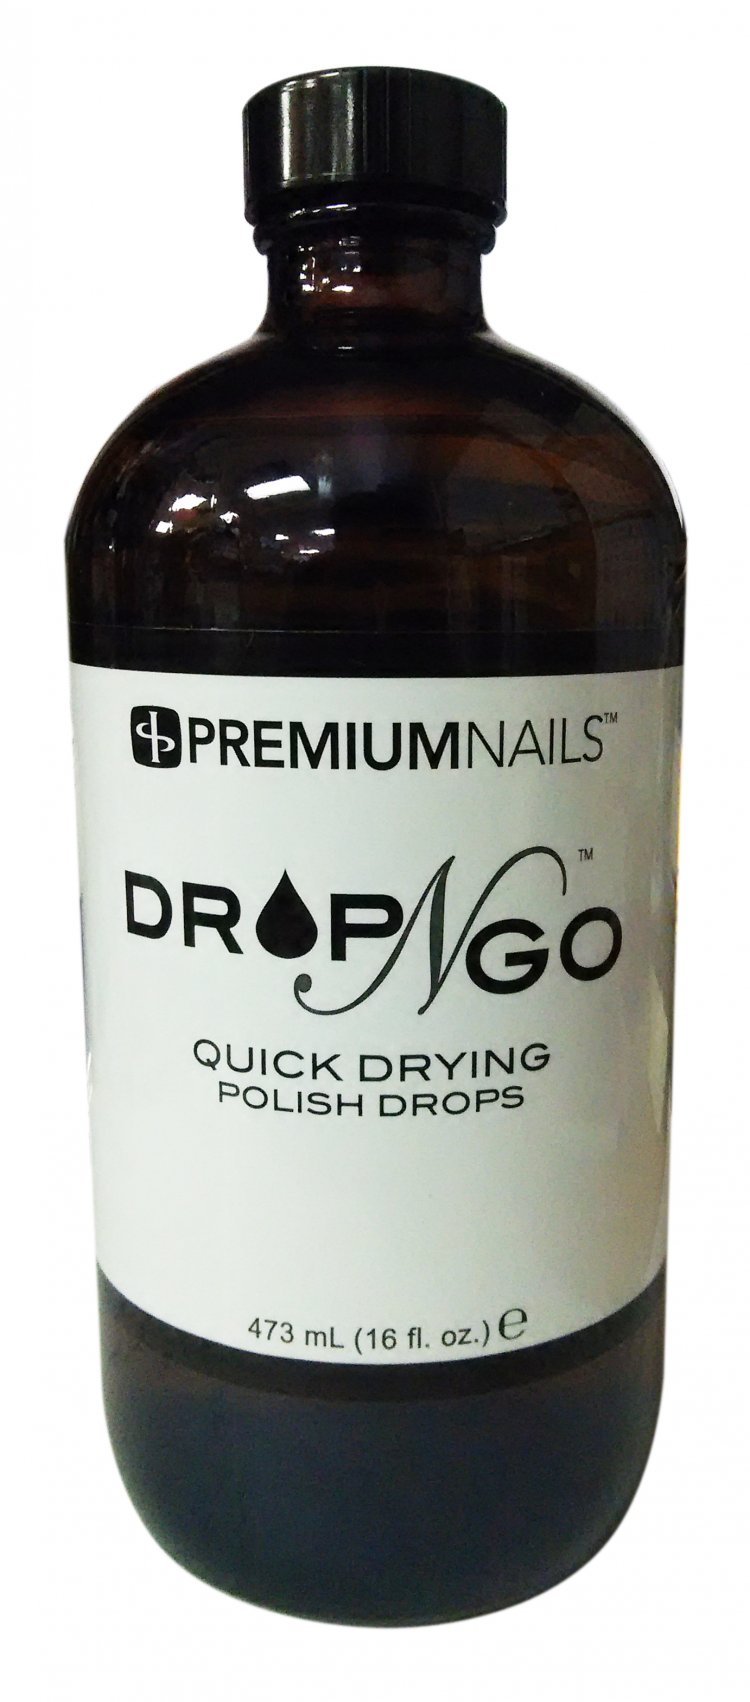 Premium Nails Drop n Go Quick Drying Polish Drops 4 oz